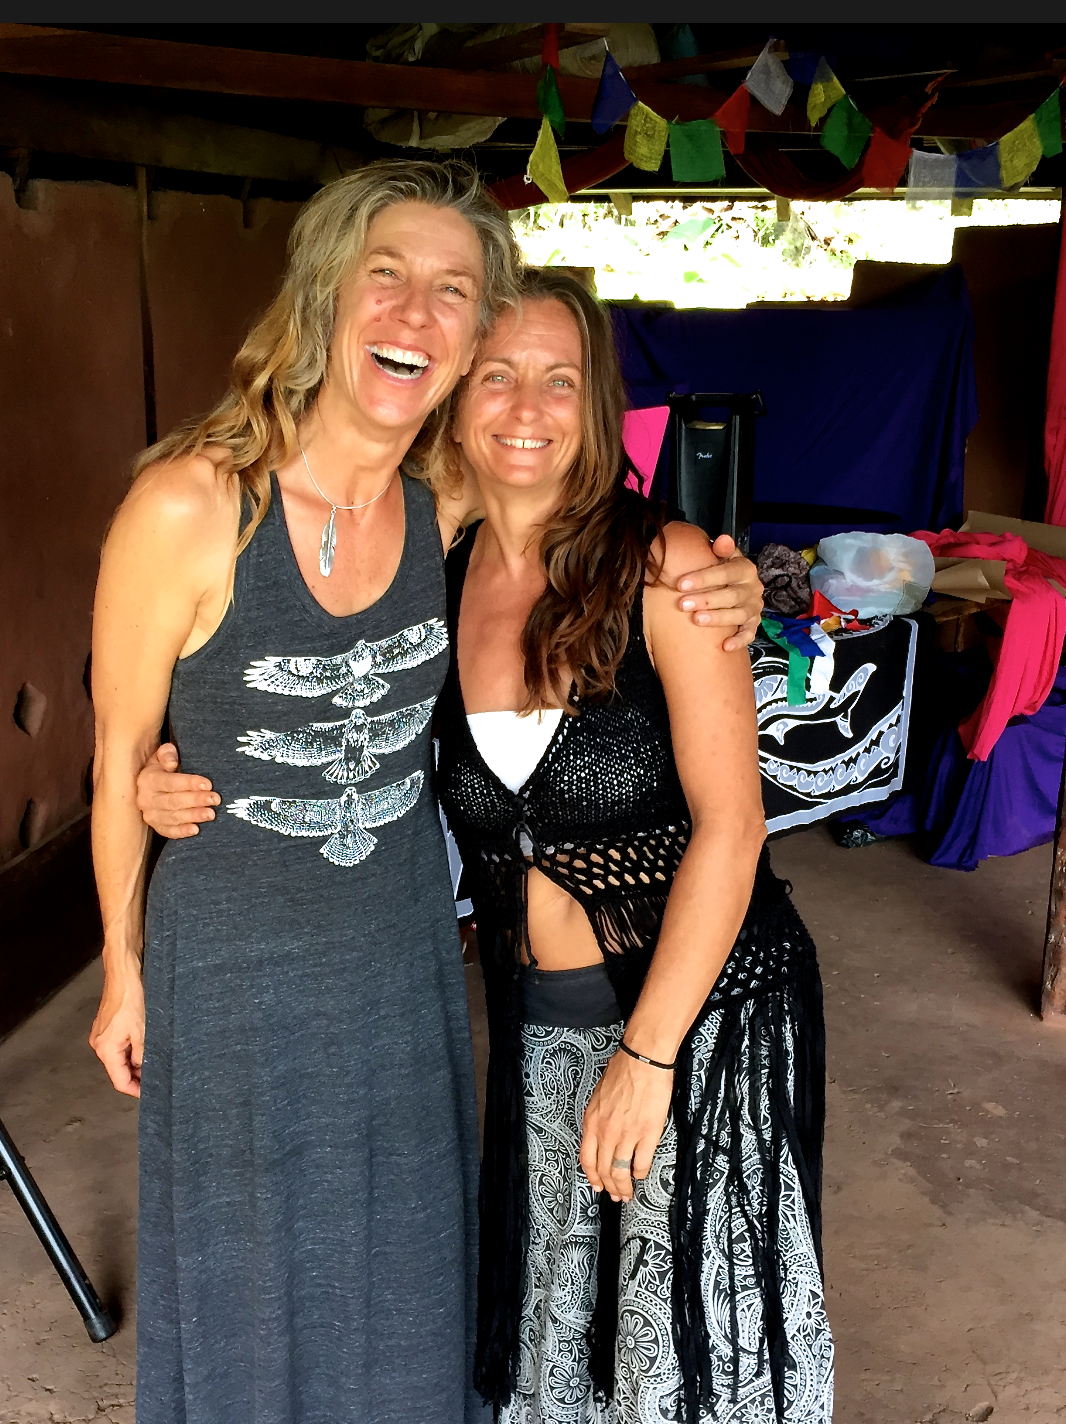 Pictured with beautiful co-founder/owner/visionary extraordinaire of Inanitah, Gaia Ma